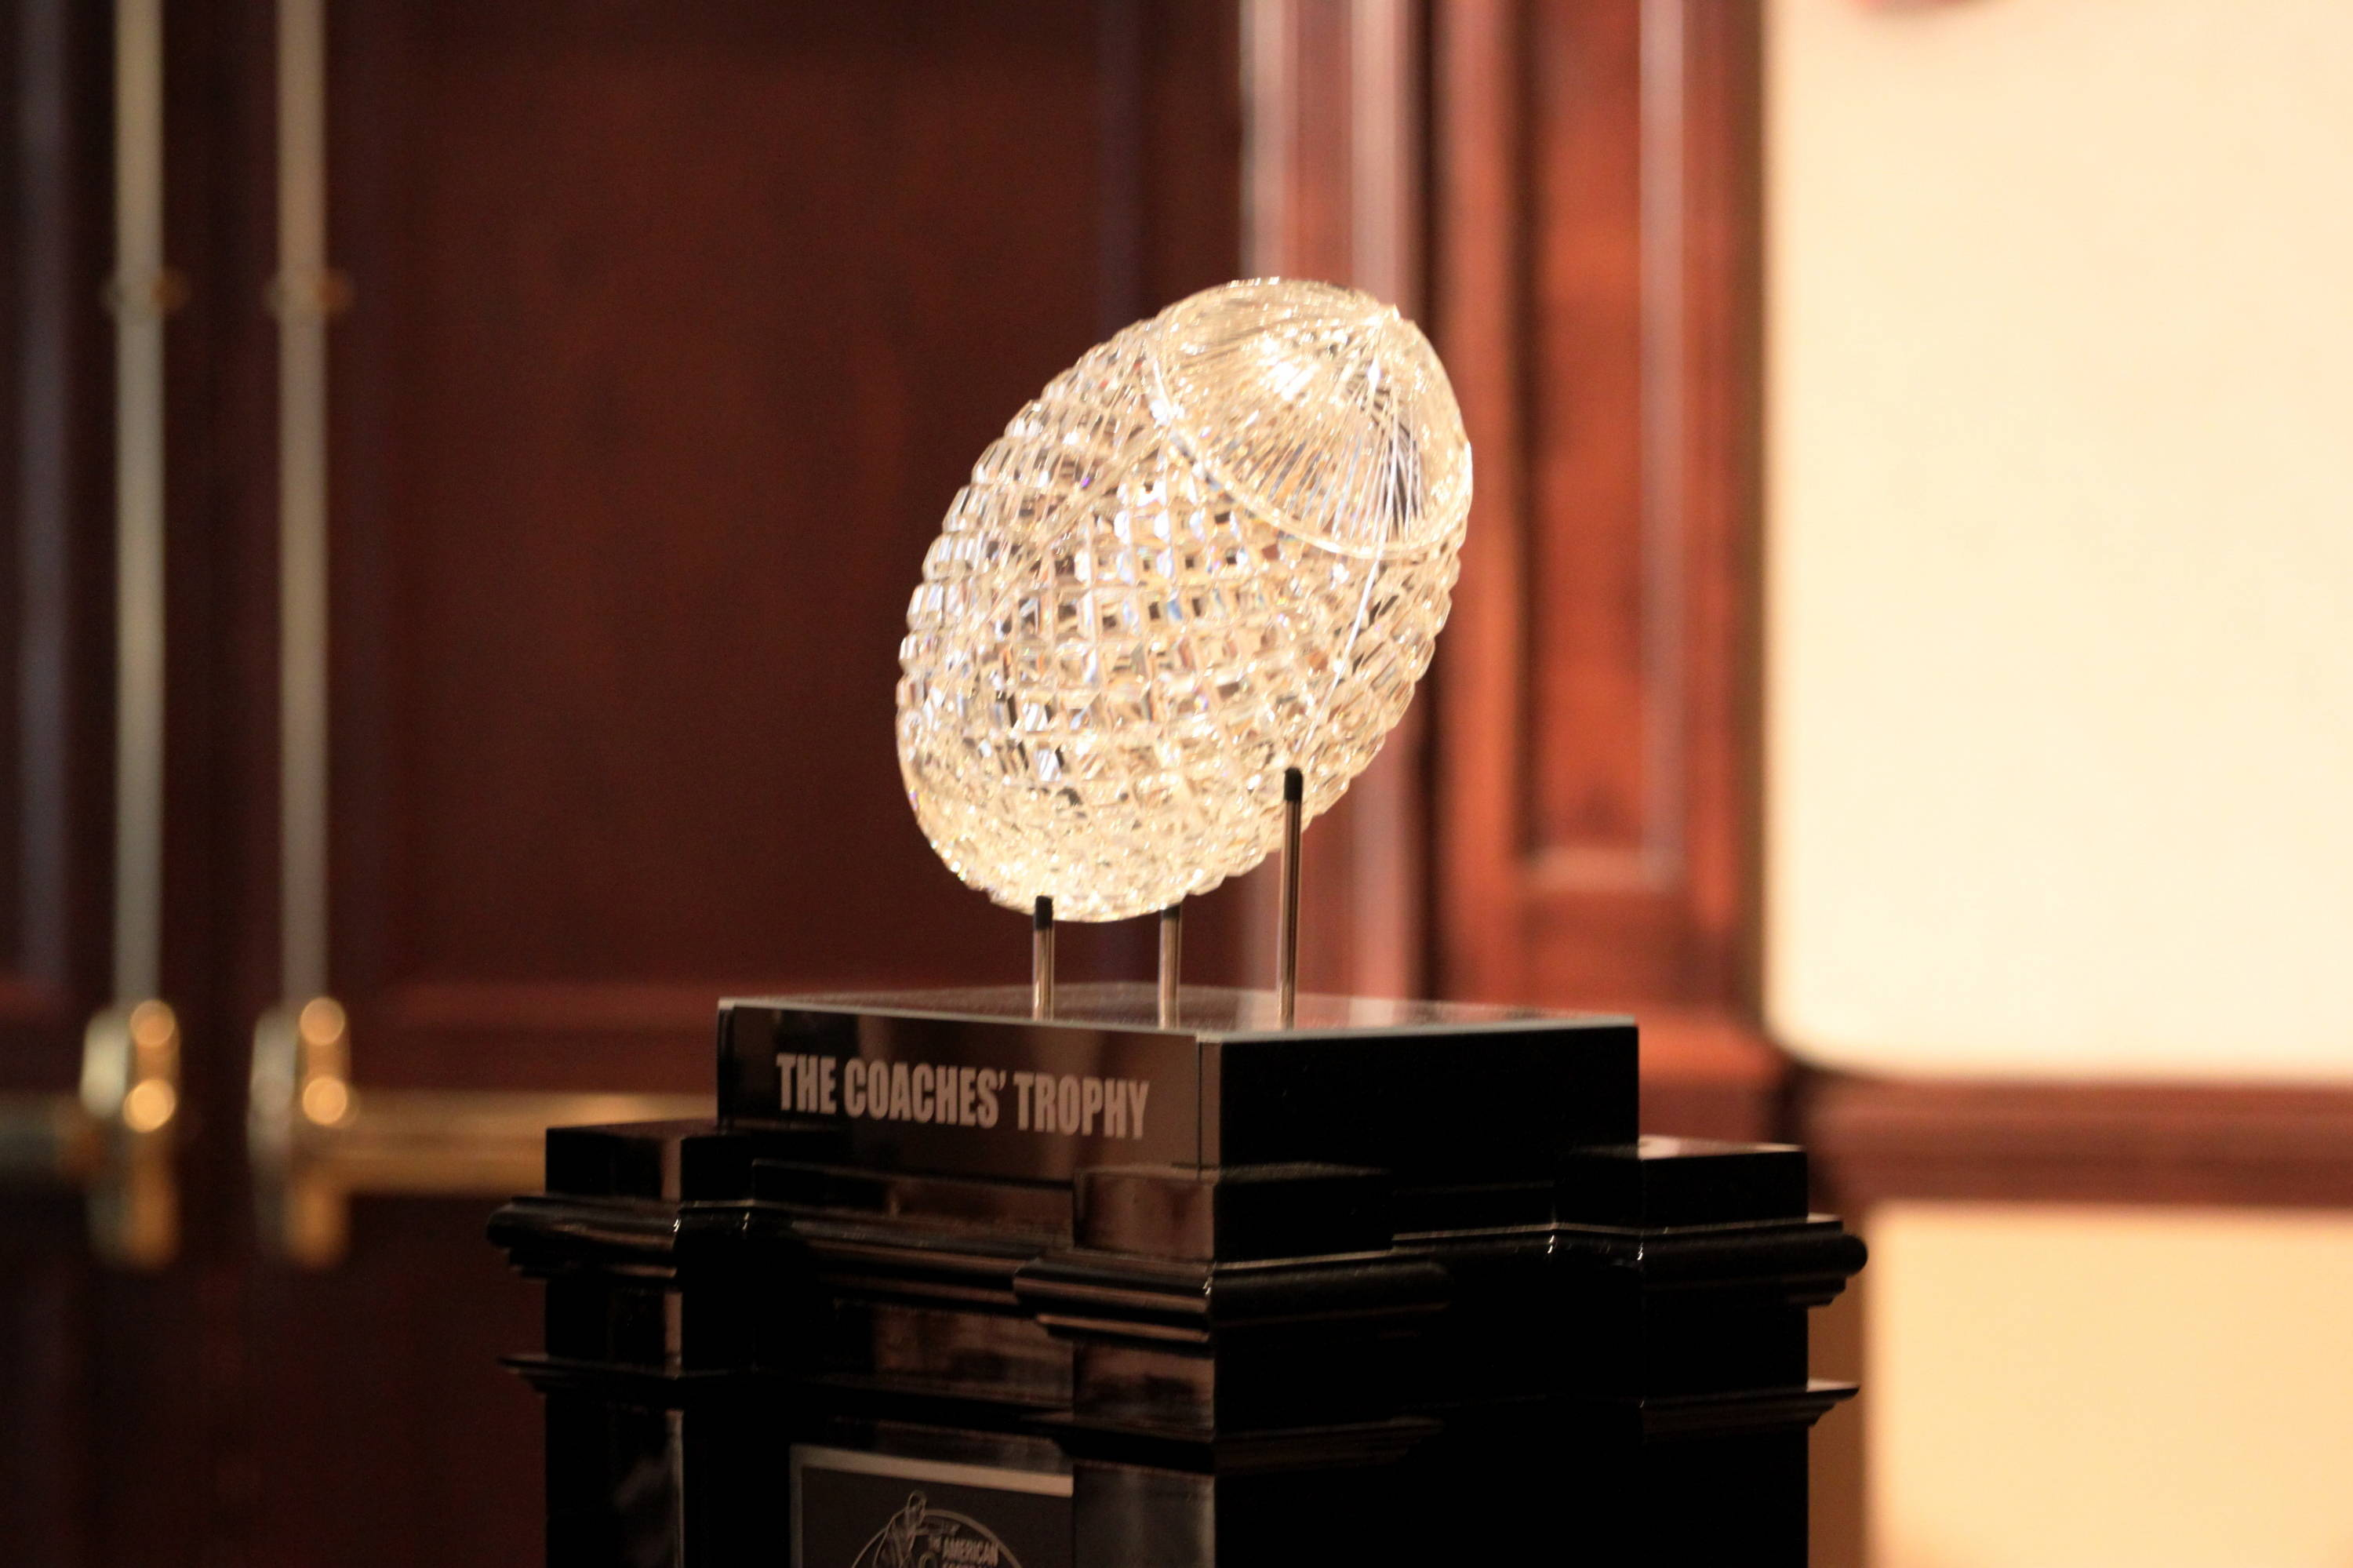 The BCS National Championship trophy.